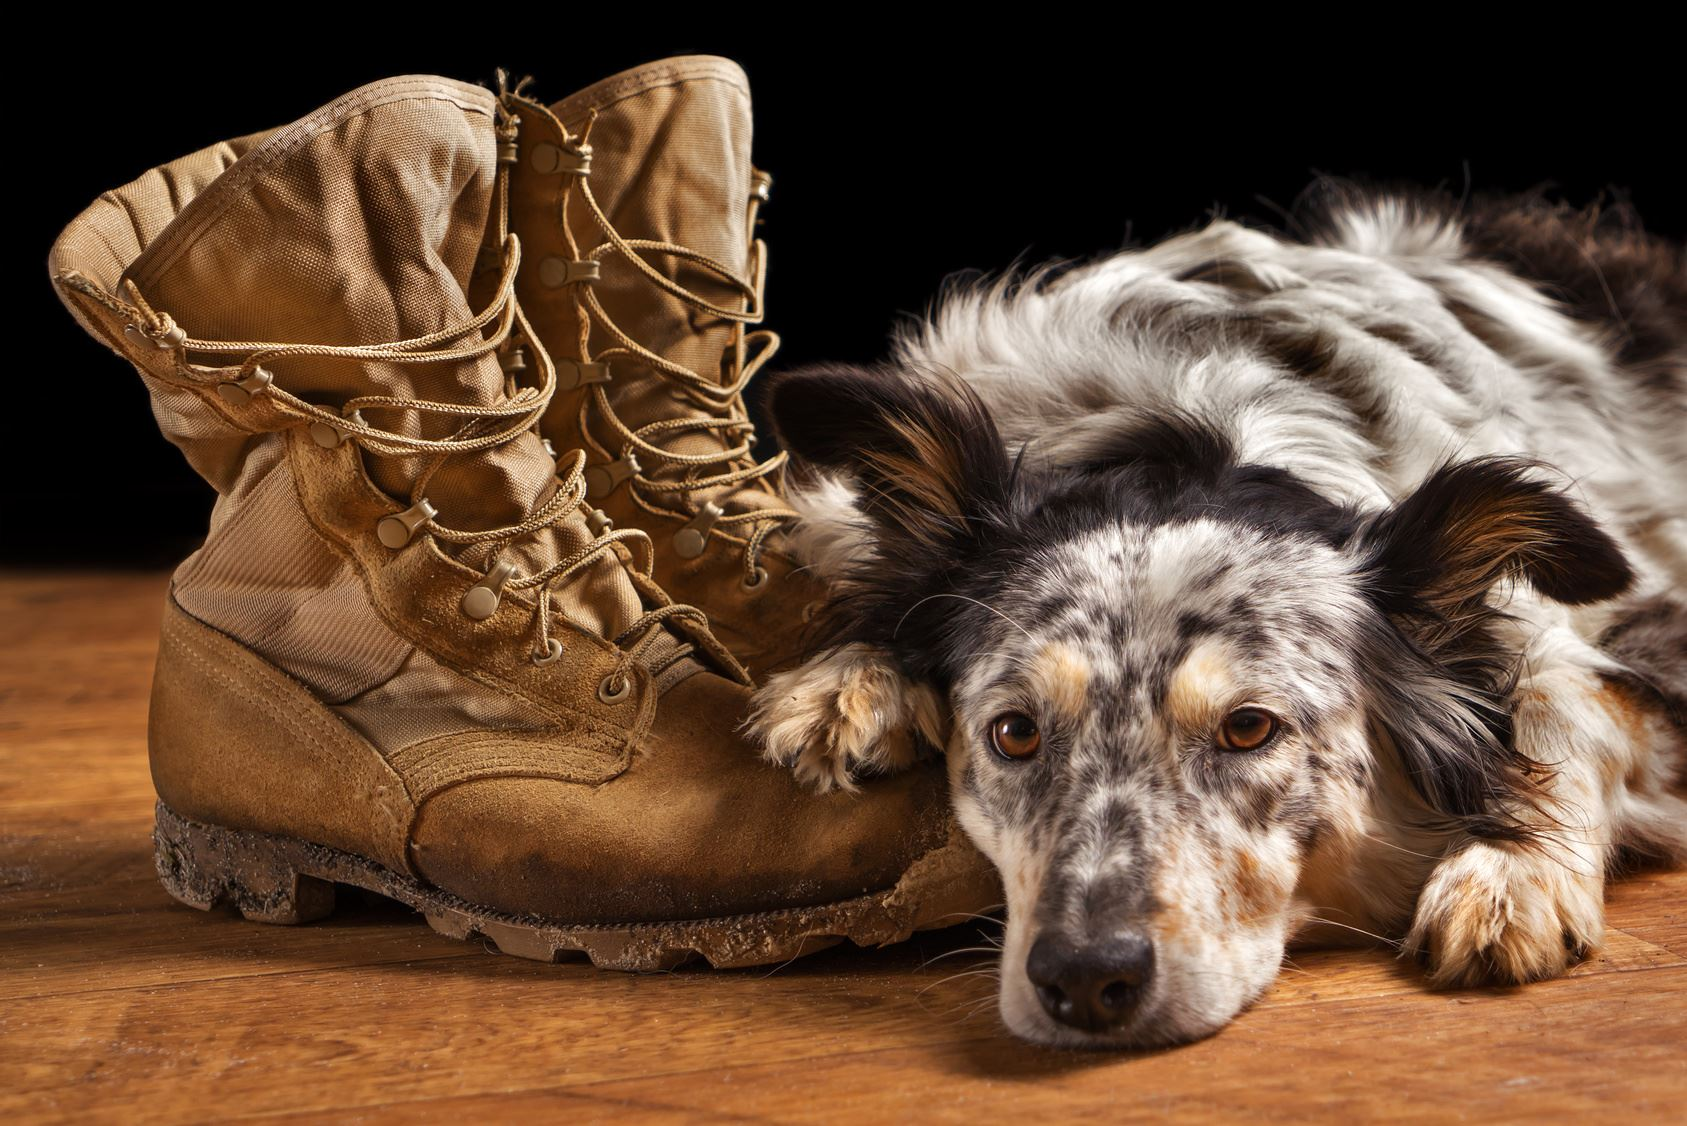 Military Boots and Dog